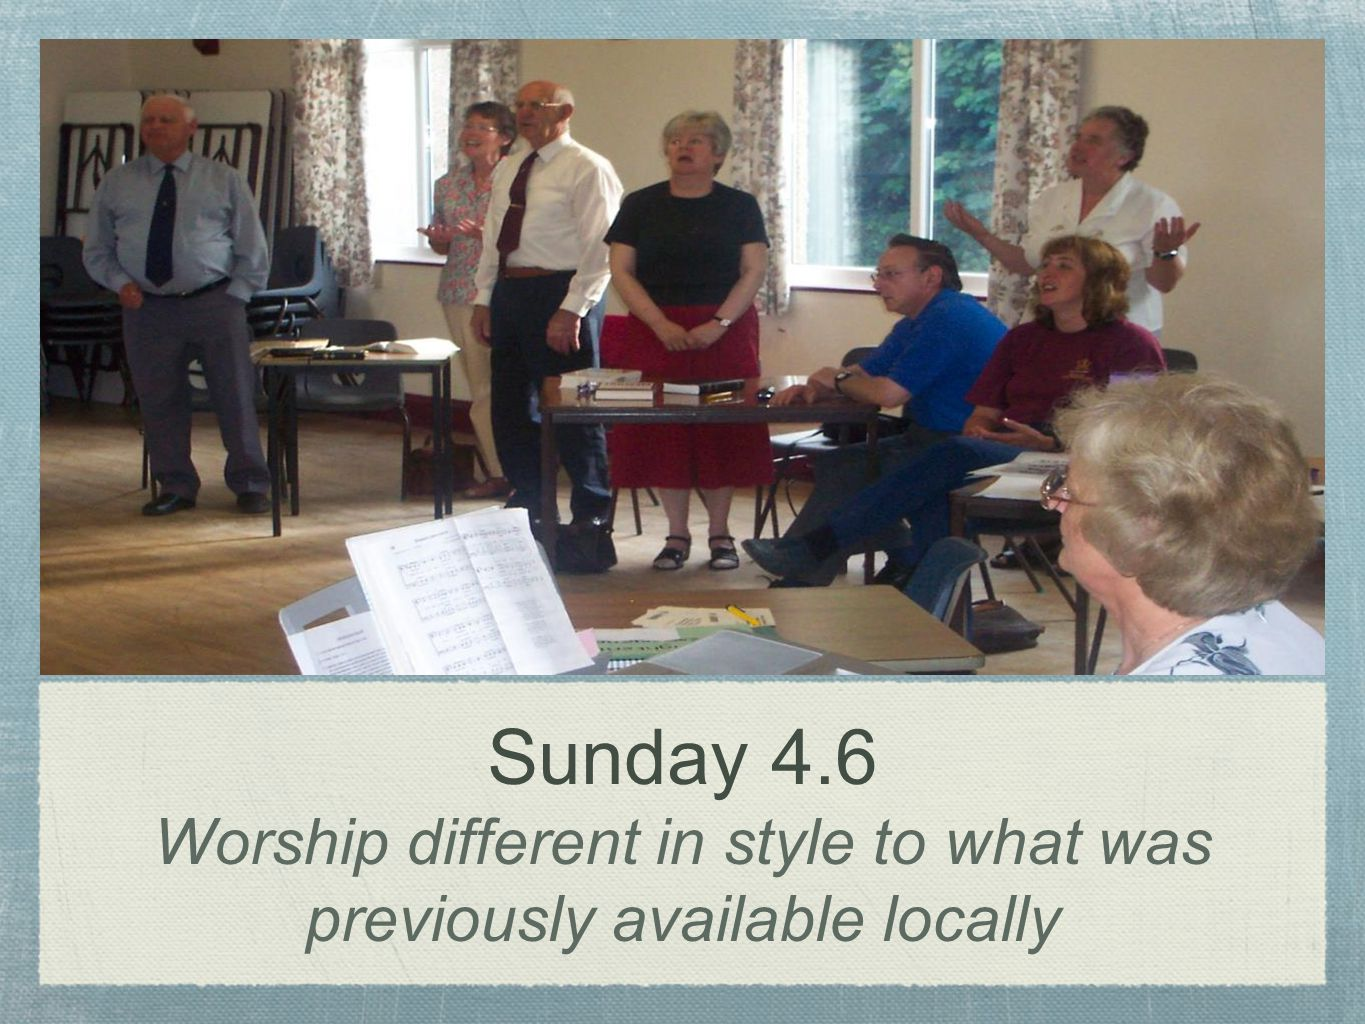 Sunday 4.6 Worship different in style to what was